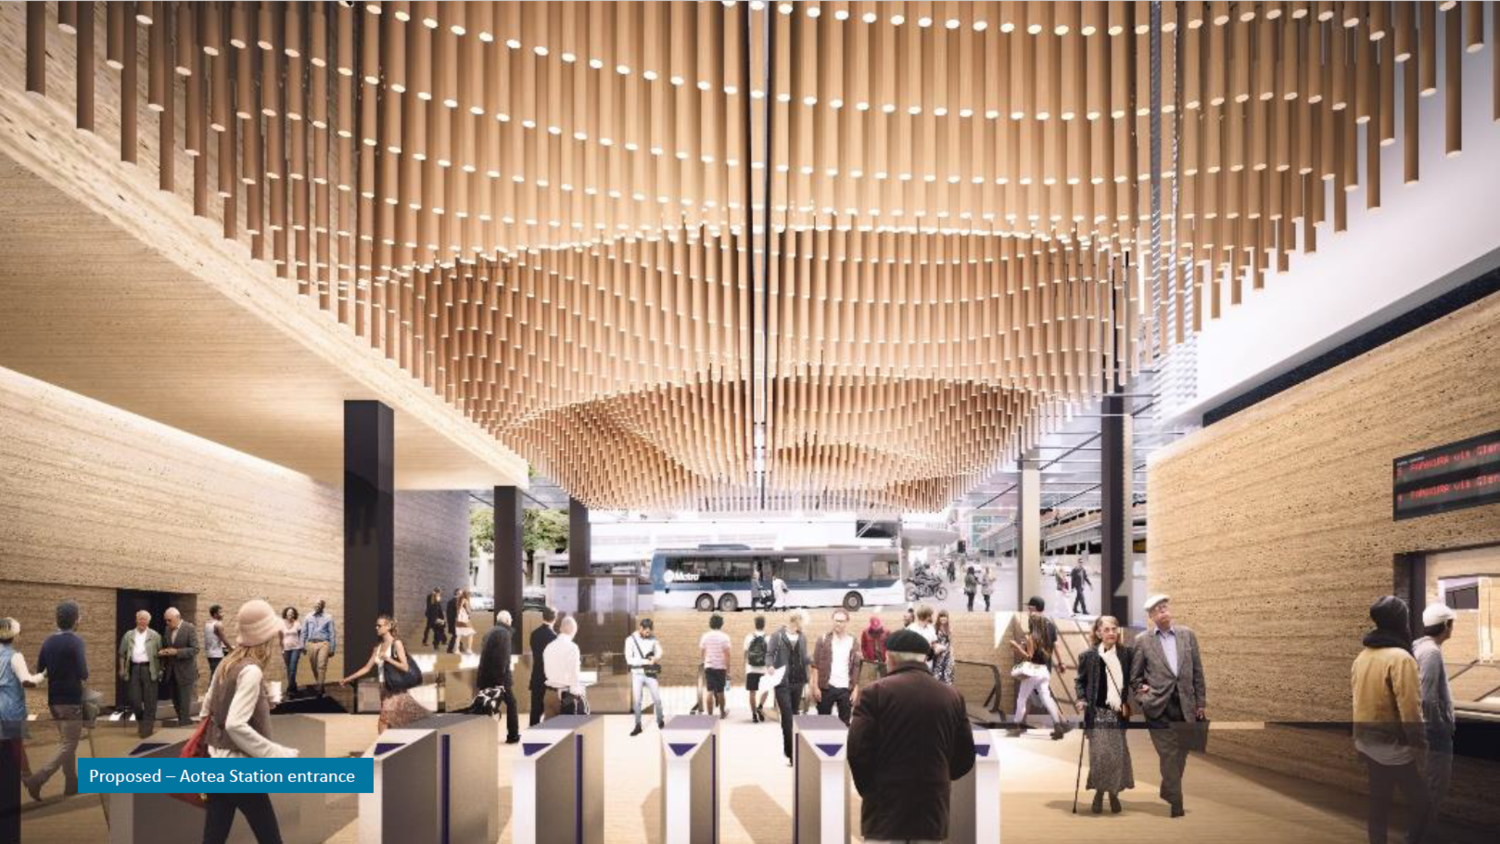 Proposed Aotea Station entrance